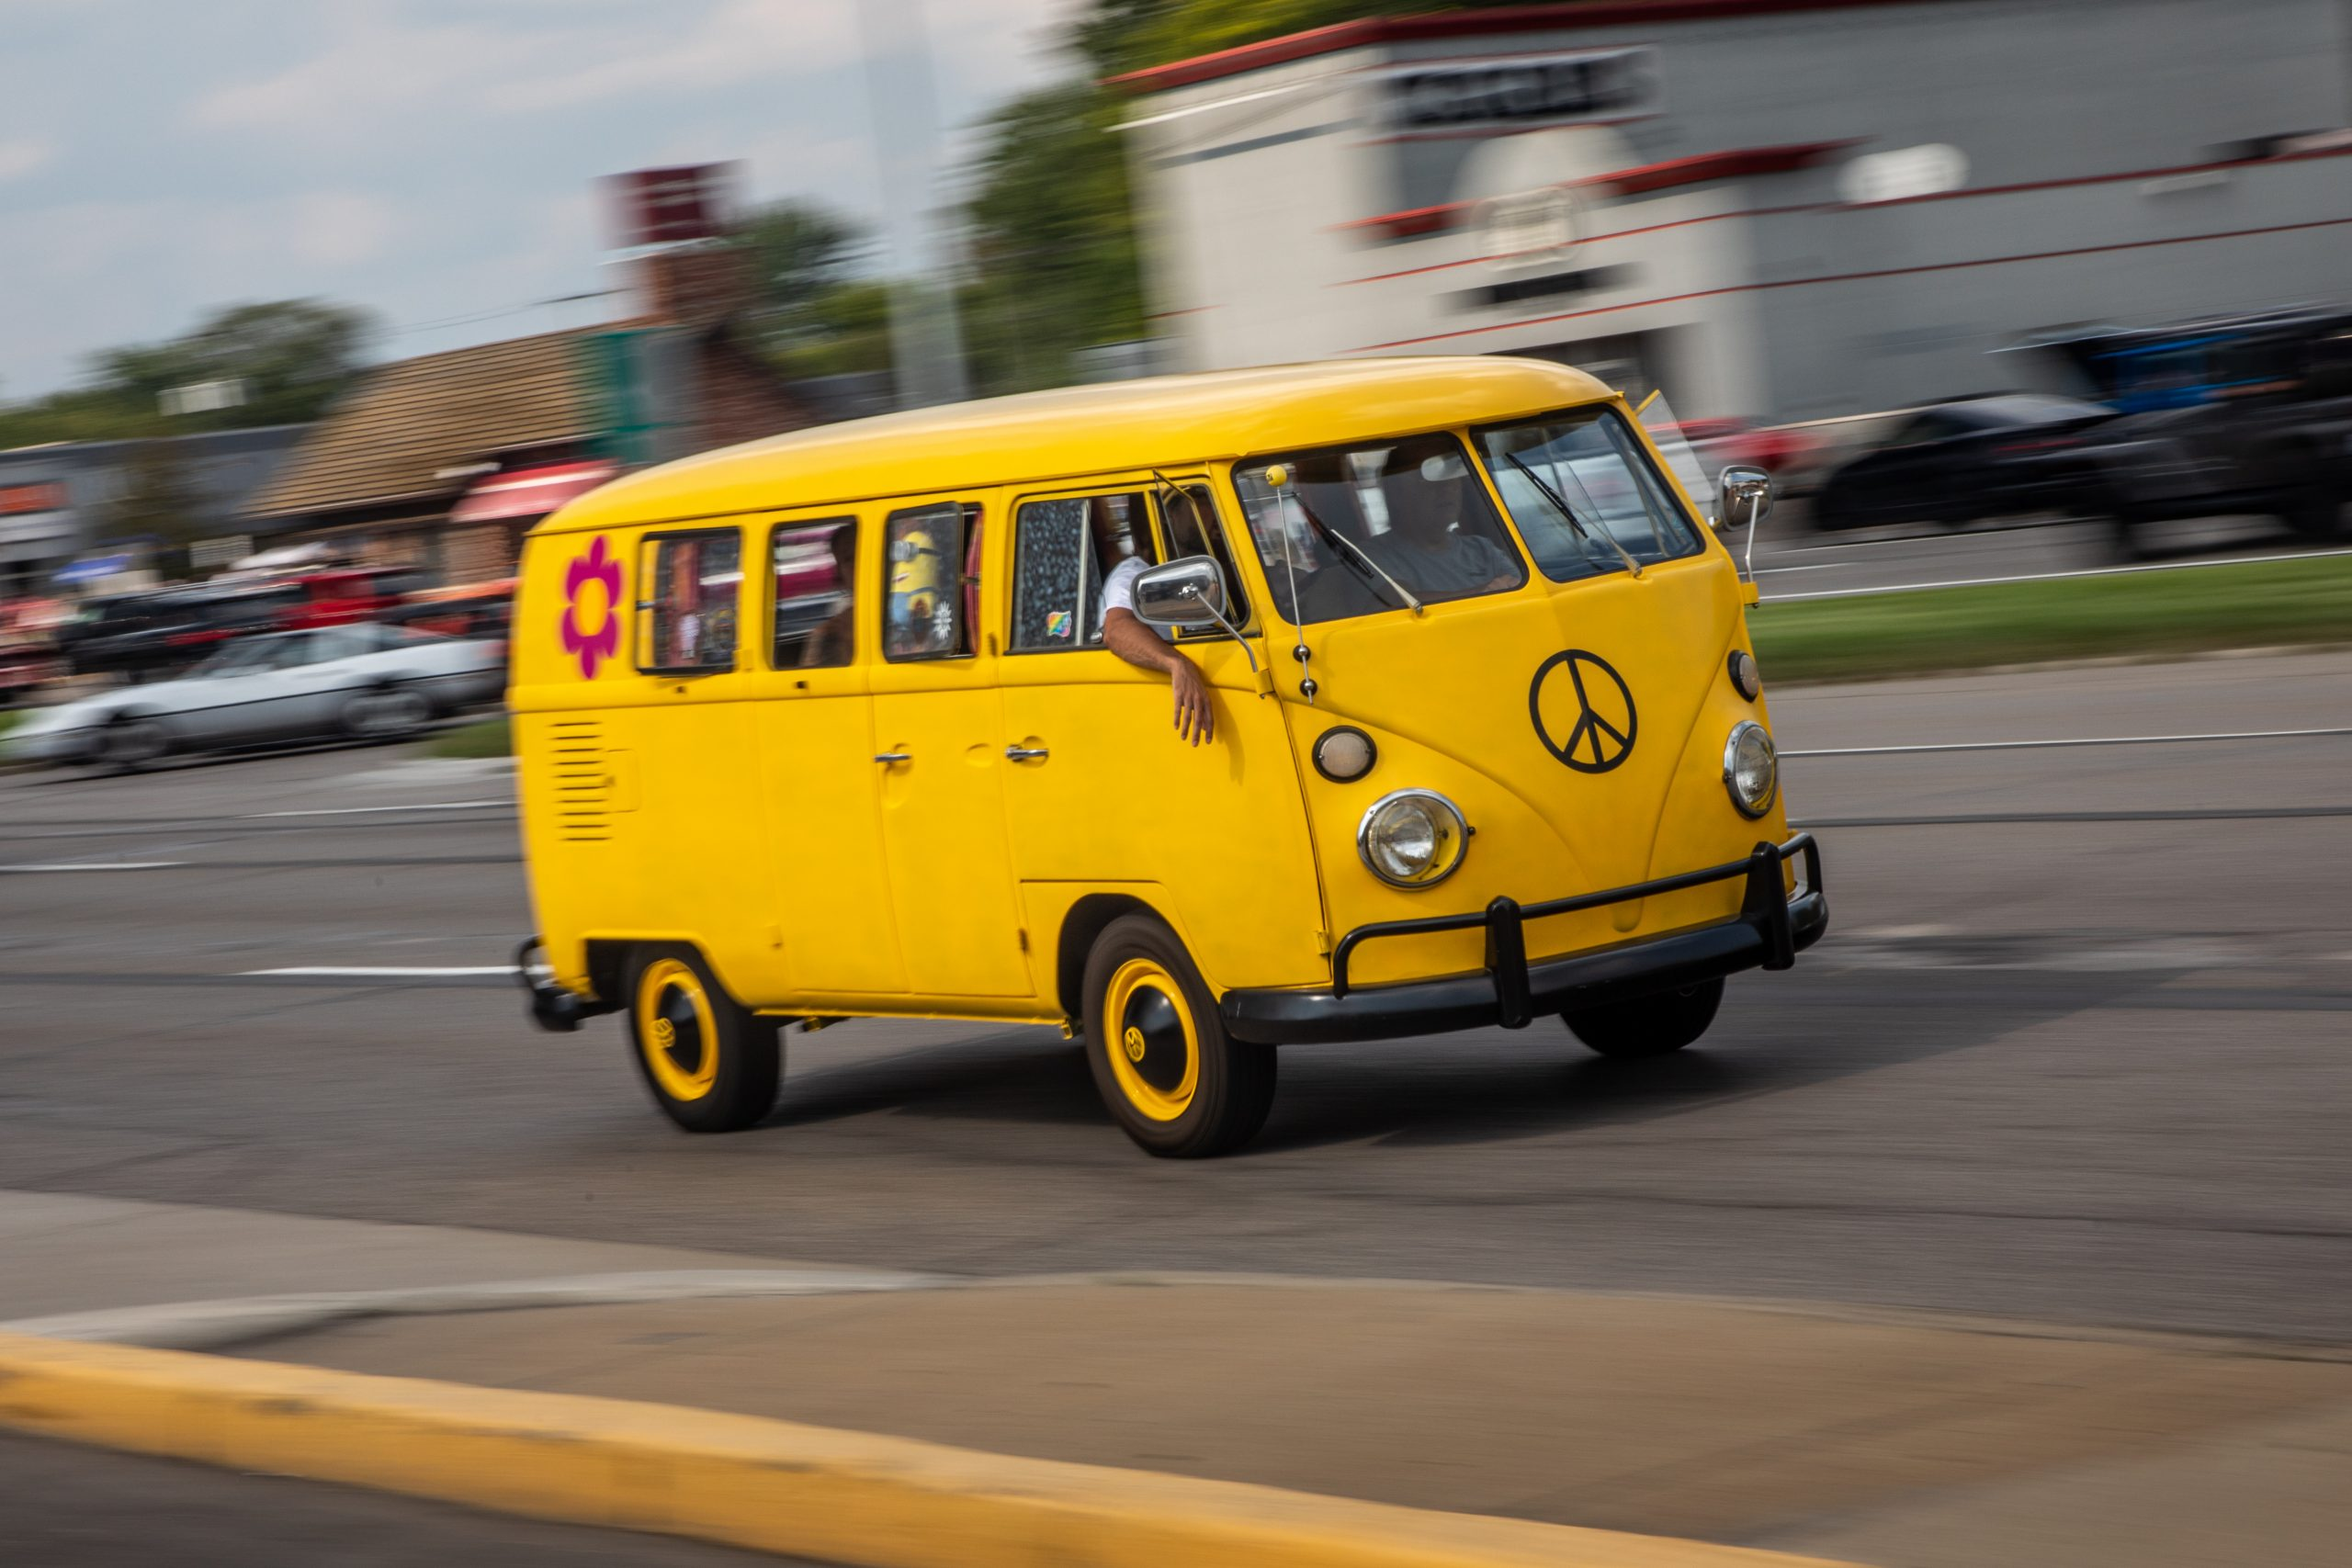 2021 Dream Cruise woodward ave action vw bus